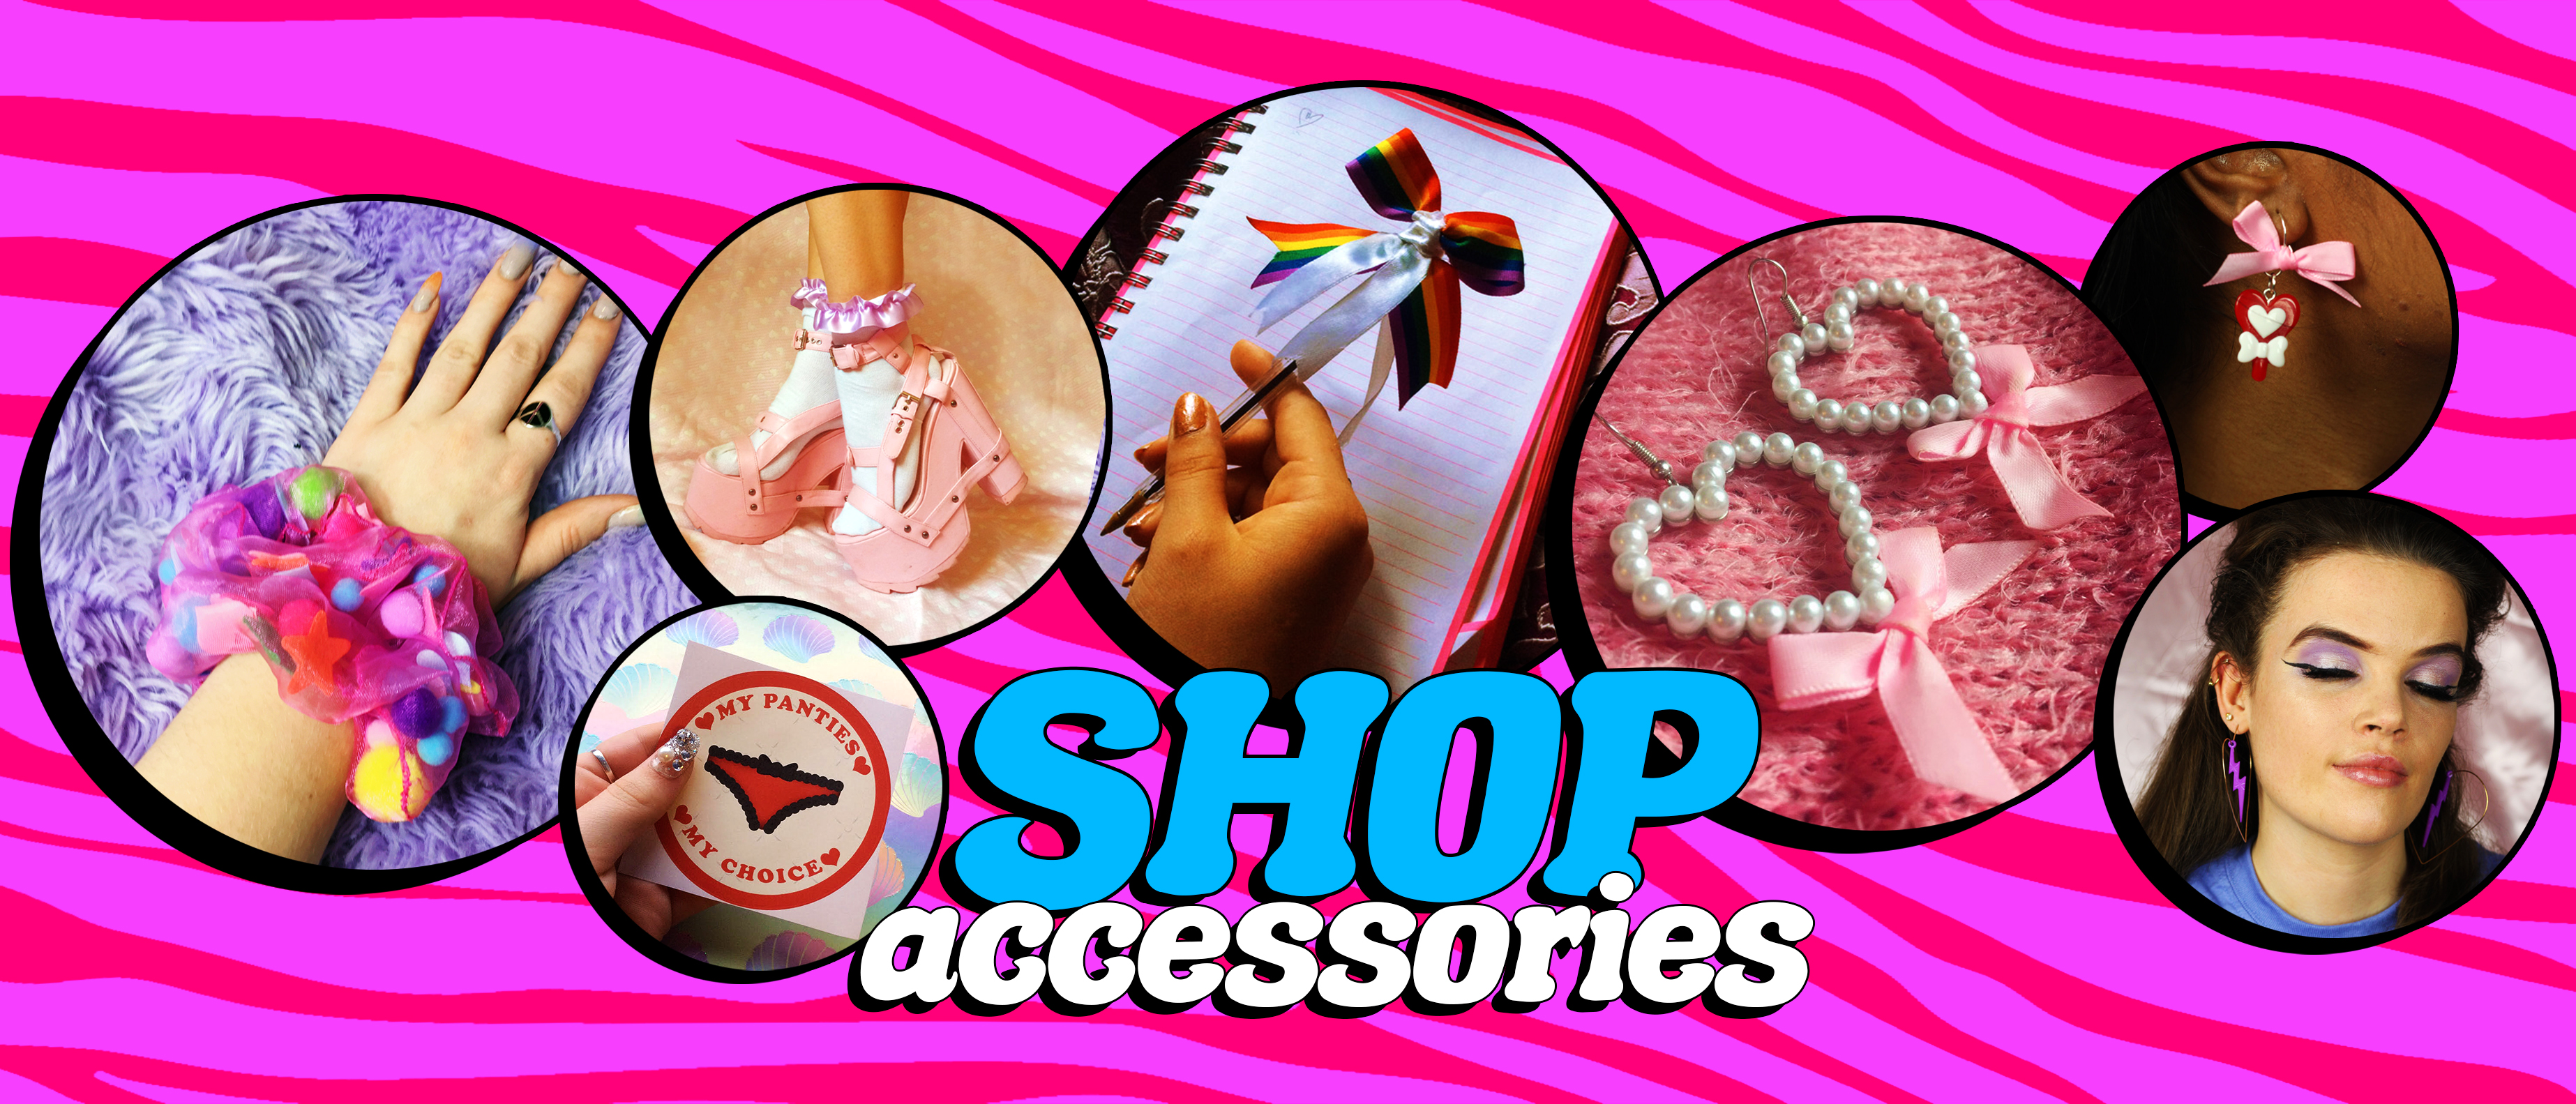 big pink boutique shop accessories earrings hair scrunchies socks stickers pens